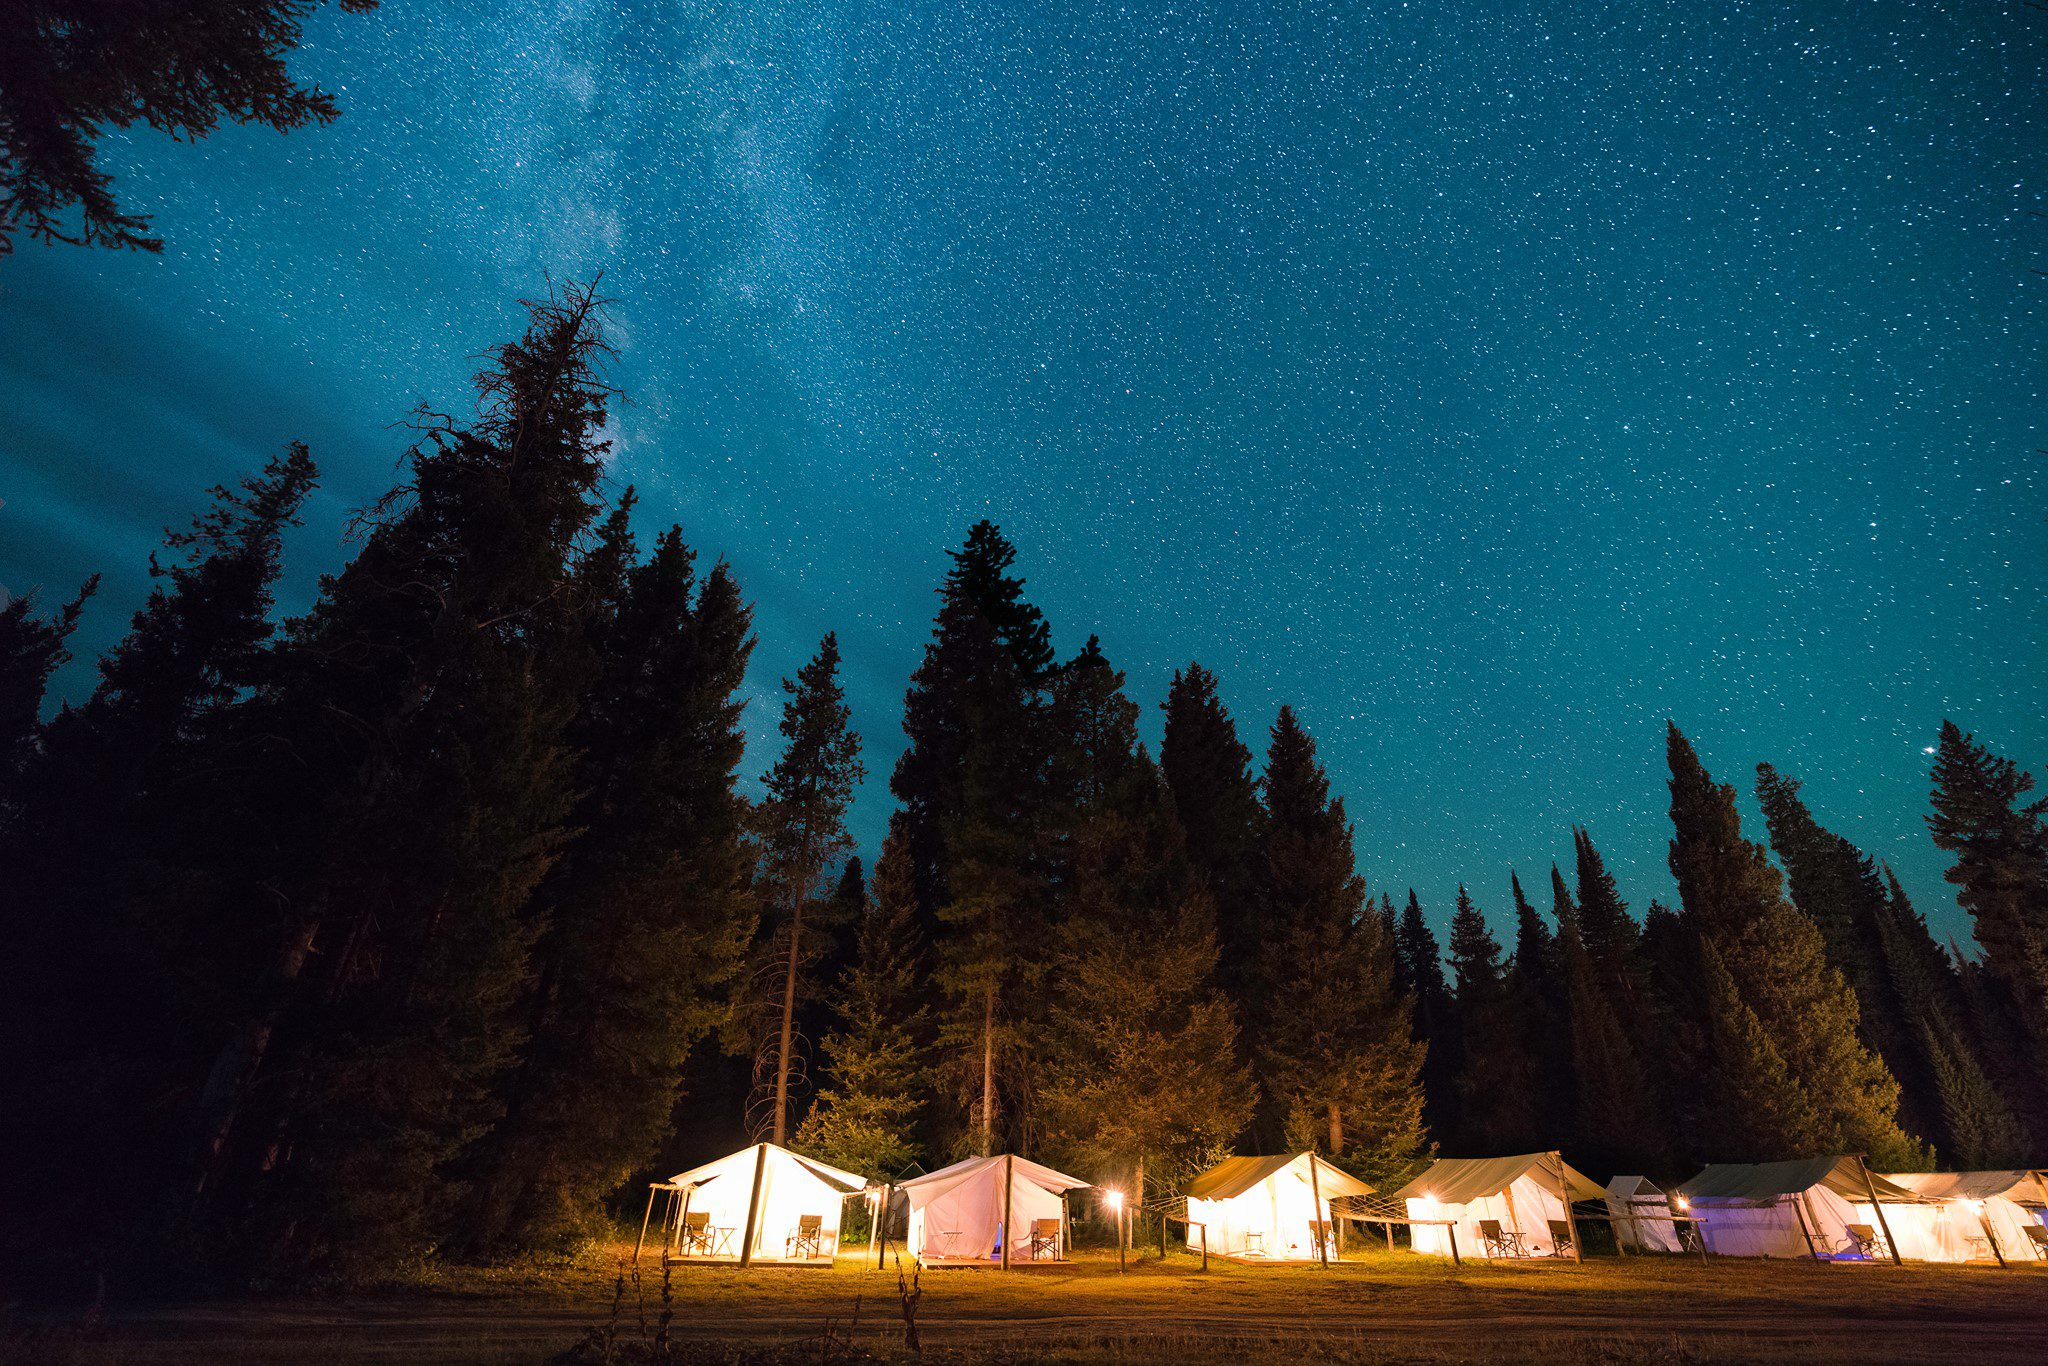 cabins lit at night beneath dark trees and galaxy in the night sky